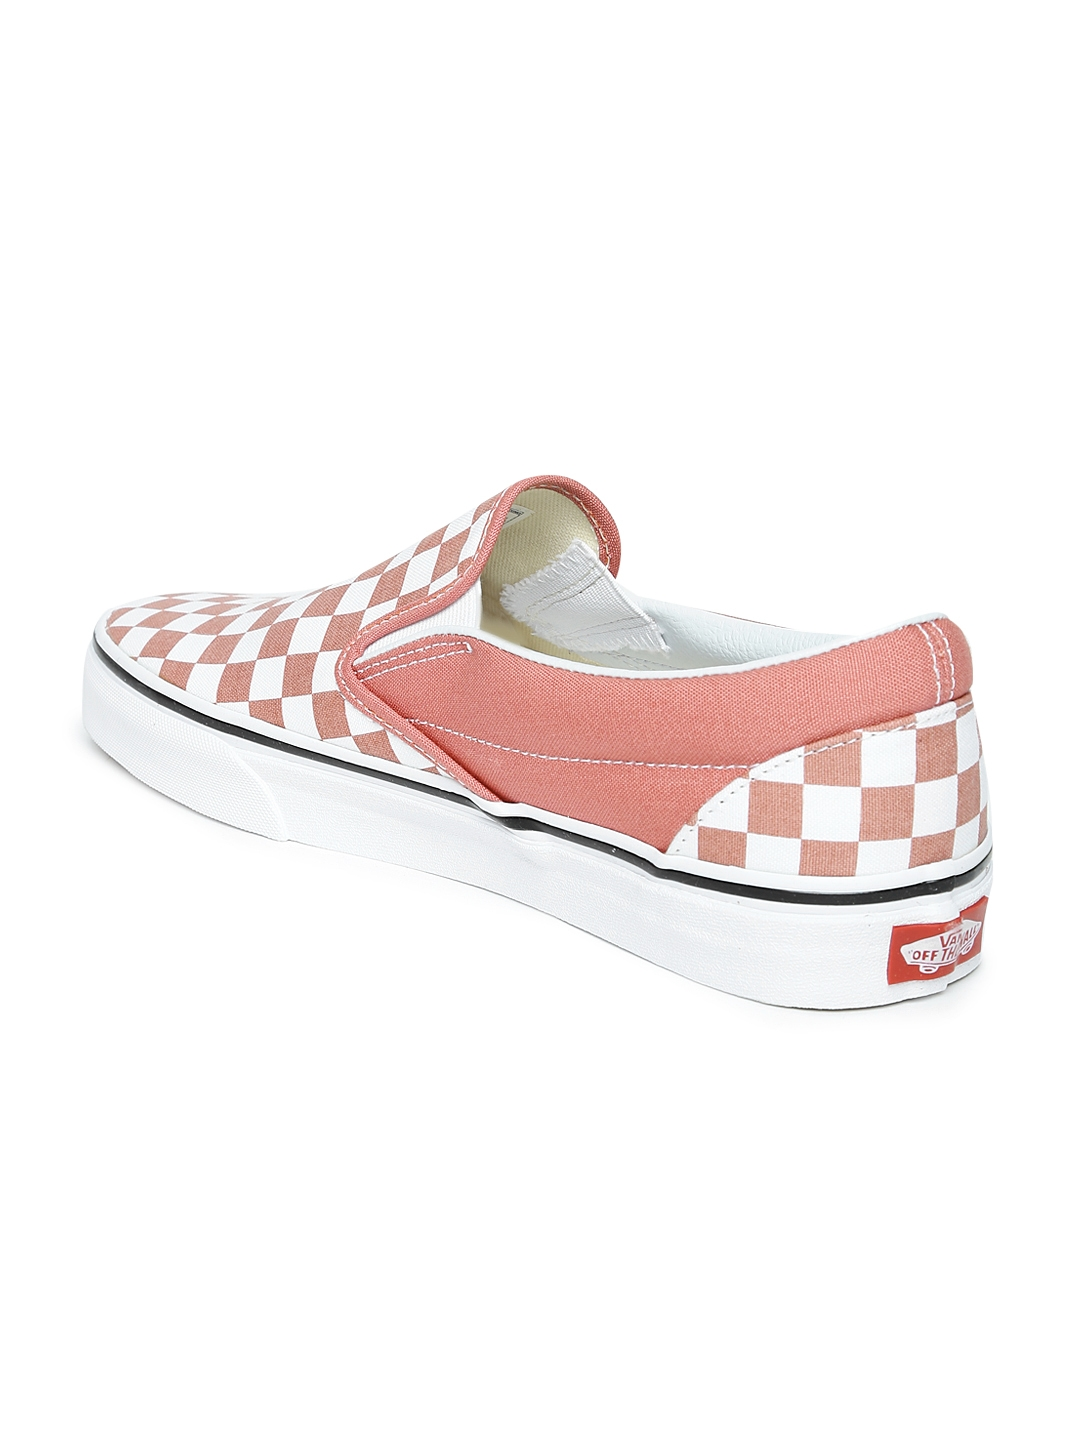 Buy Vans Unisex Pink   White Classic Checked Slip On Sneakers ... 92e4ddcfb